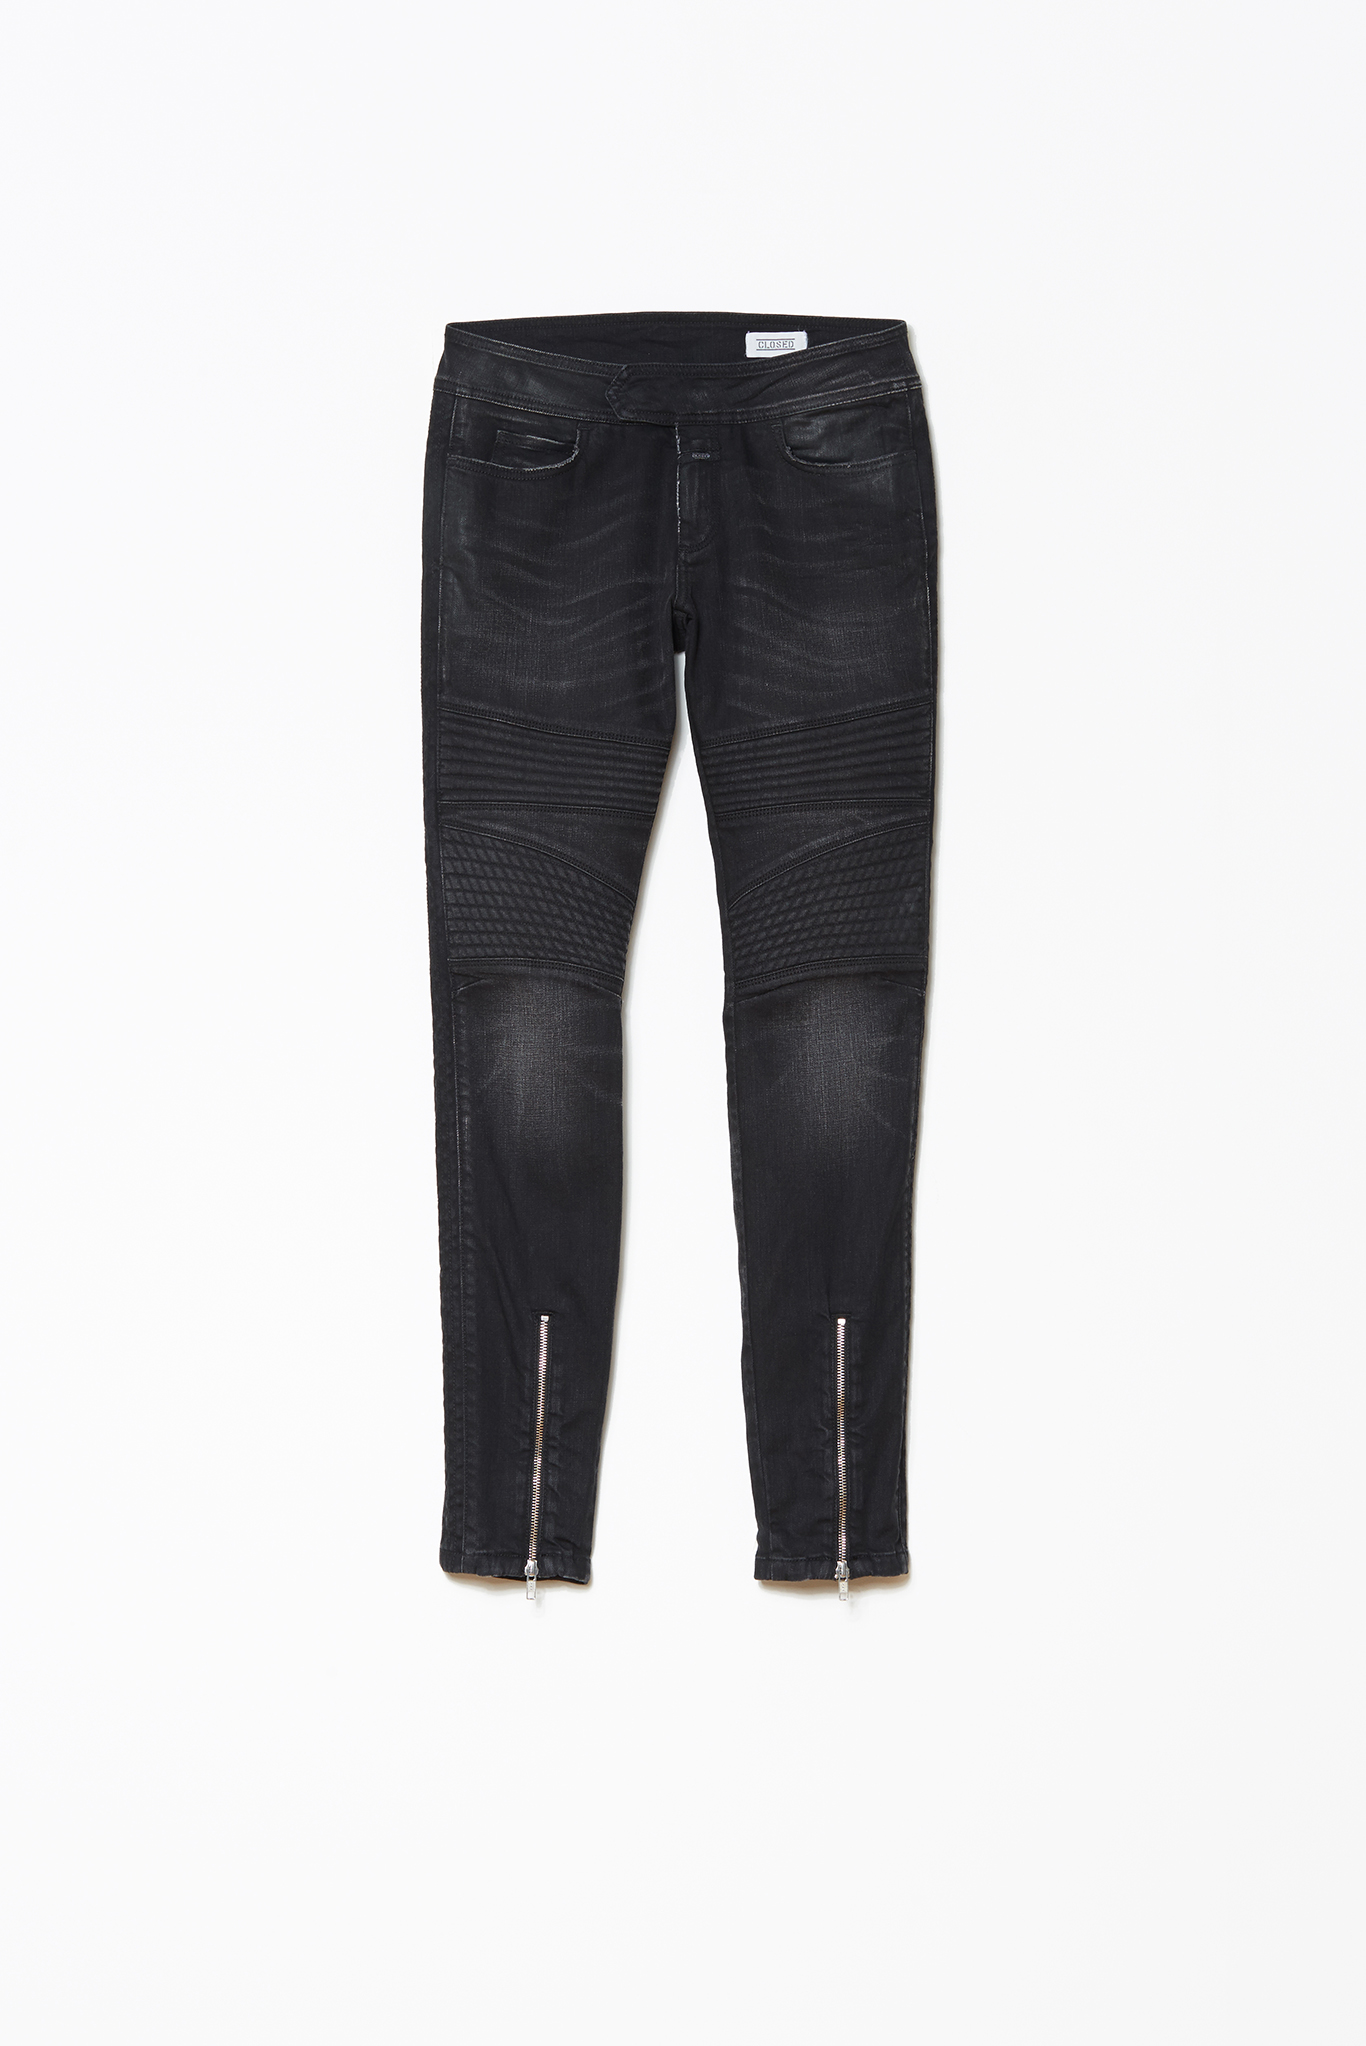 Closed | Ivy Skinny-Leg Waxed Denim-Pants | Shop